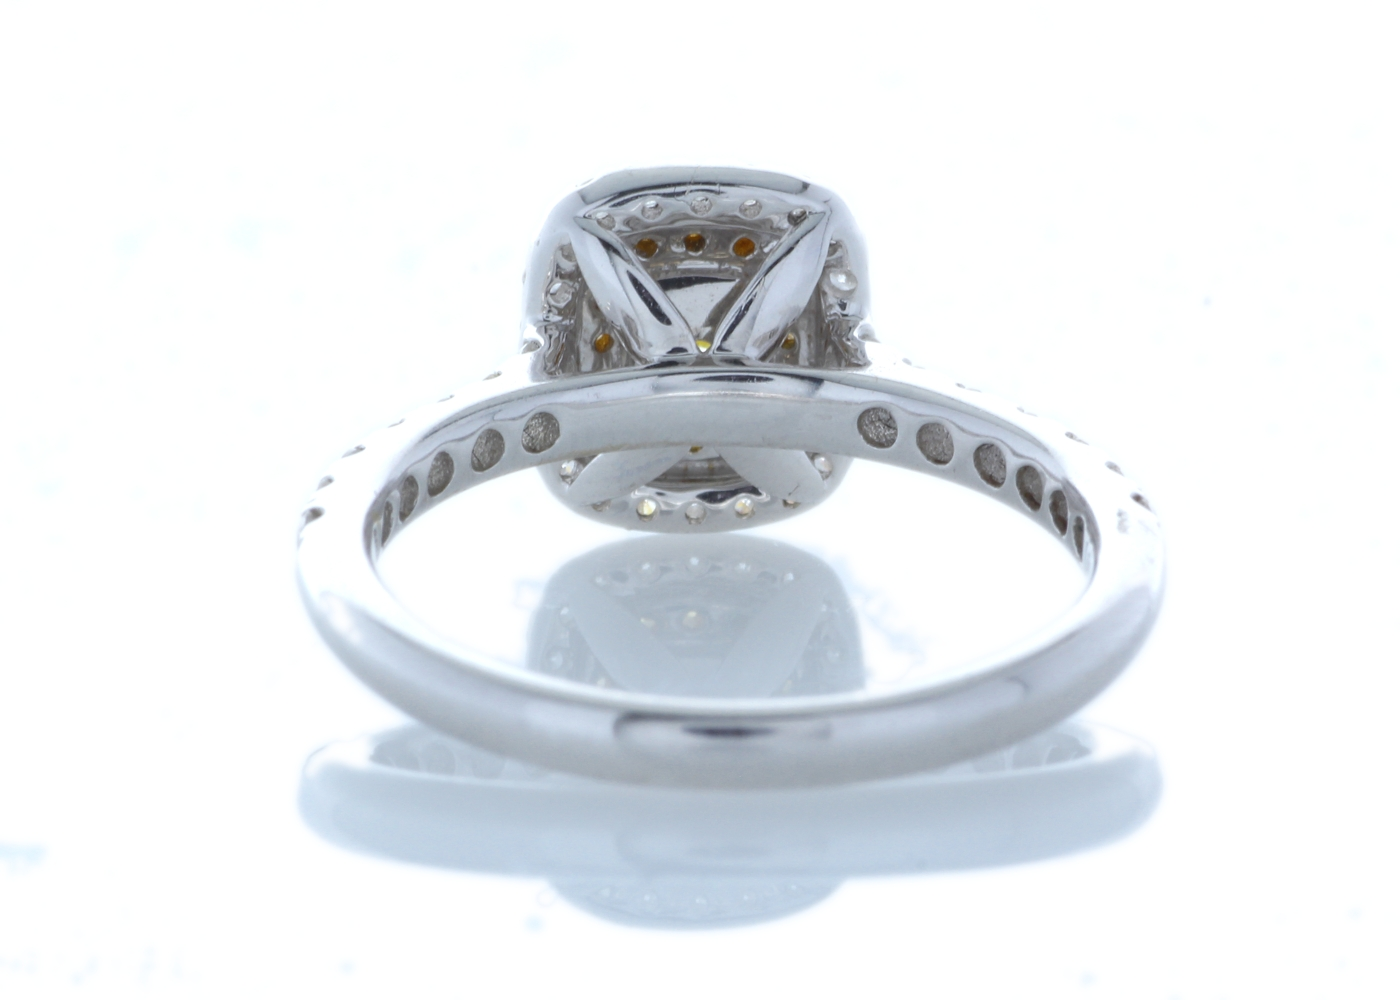 18ct White Gold Halo Set Ring 0.70 Carats - Image 3 of 5